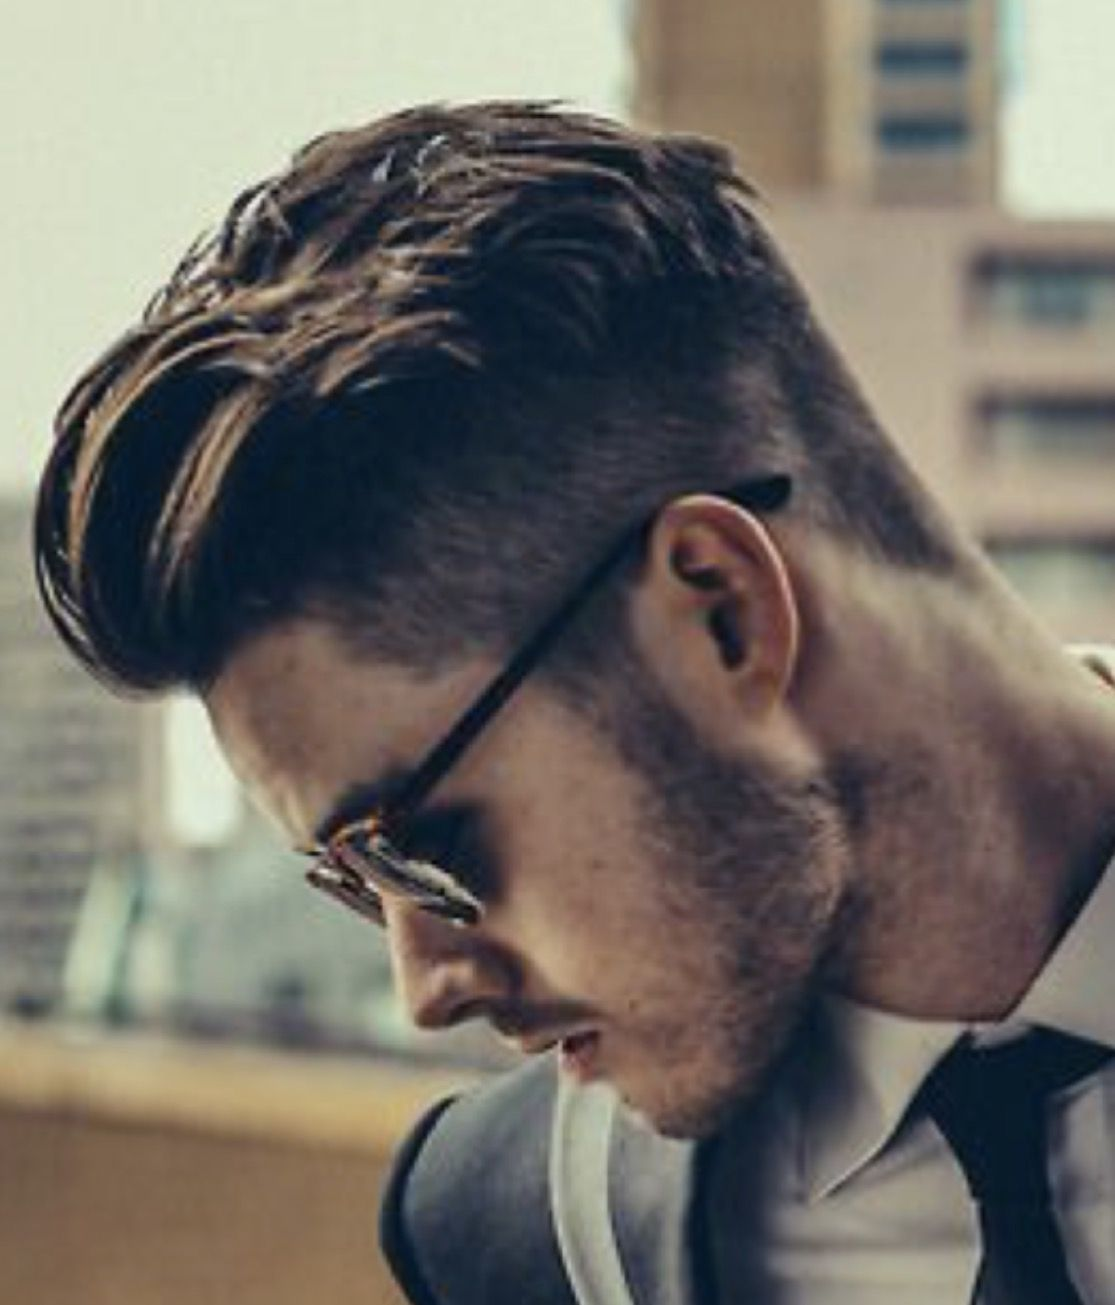 Best Side View Haircuts For Men Mens Hairstyles Greaser Hair